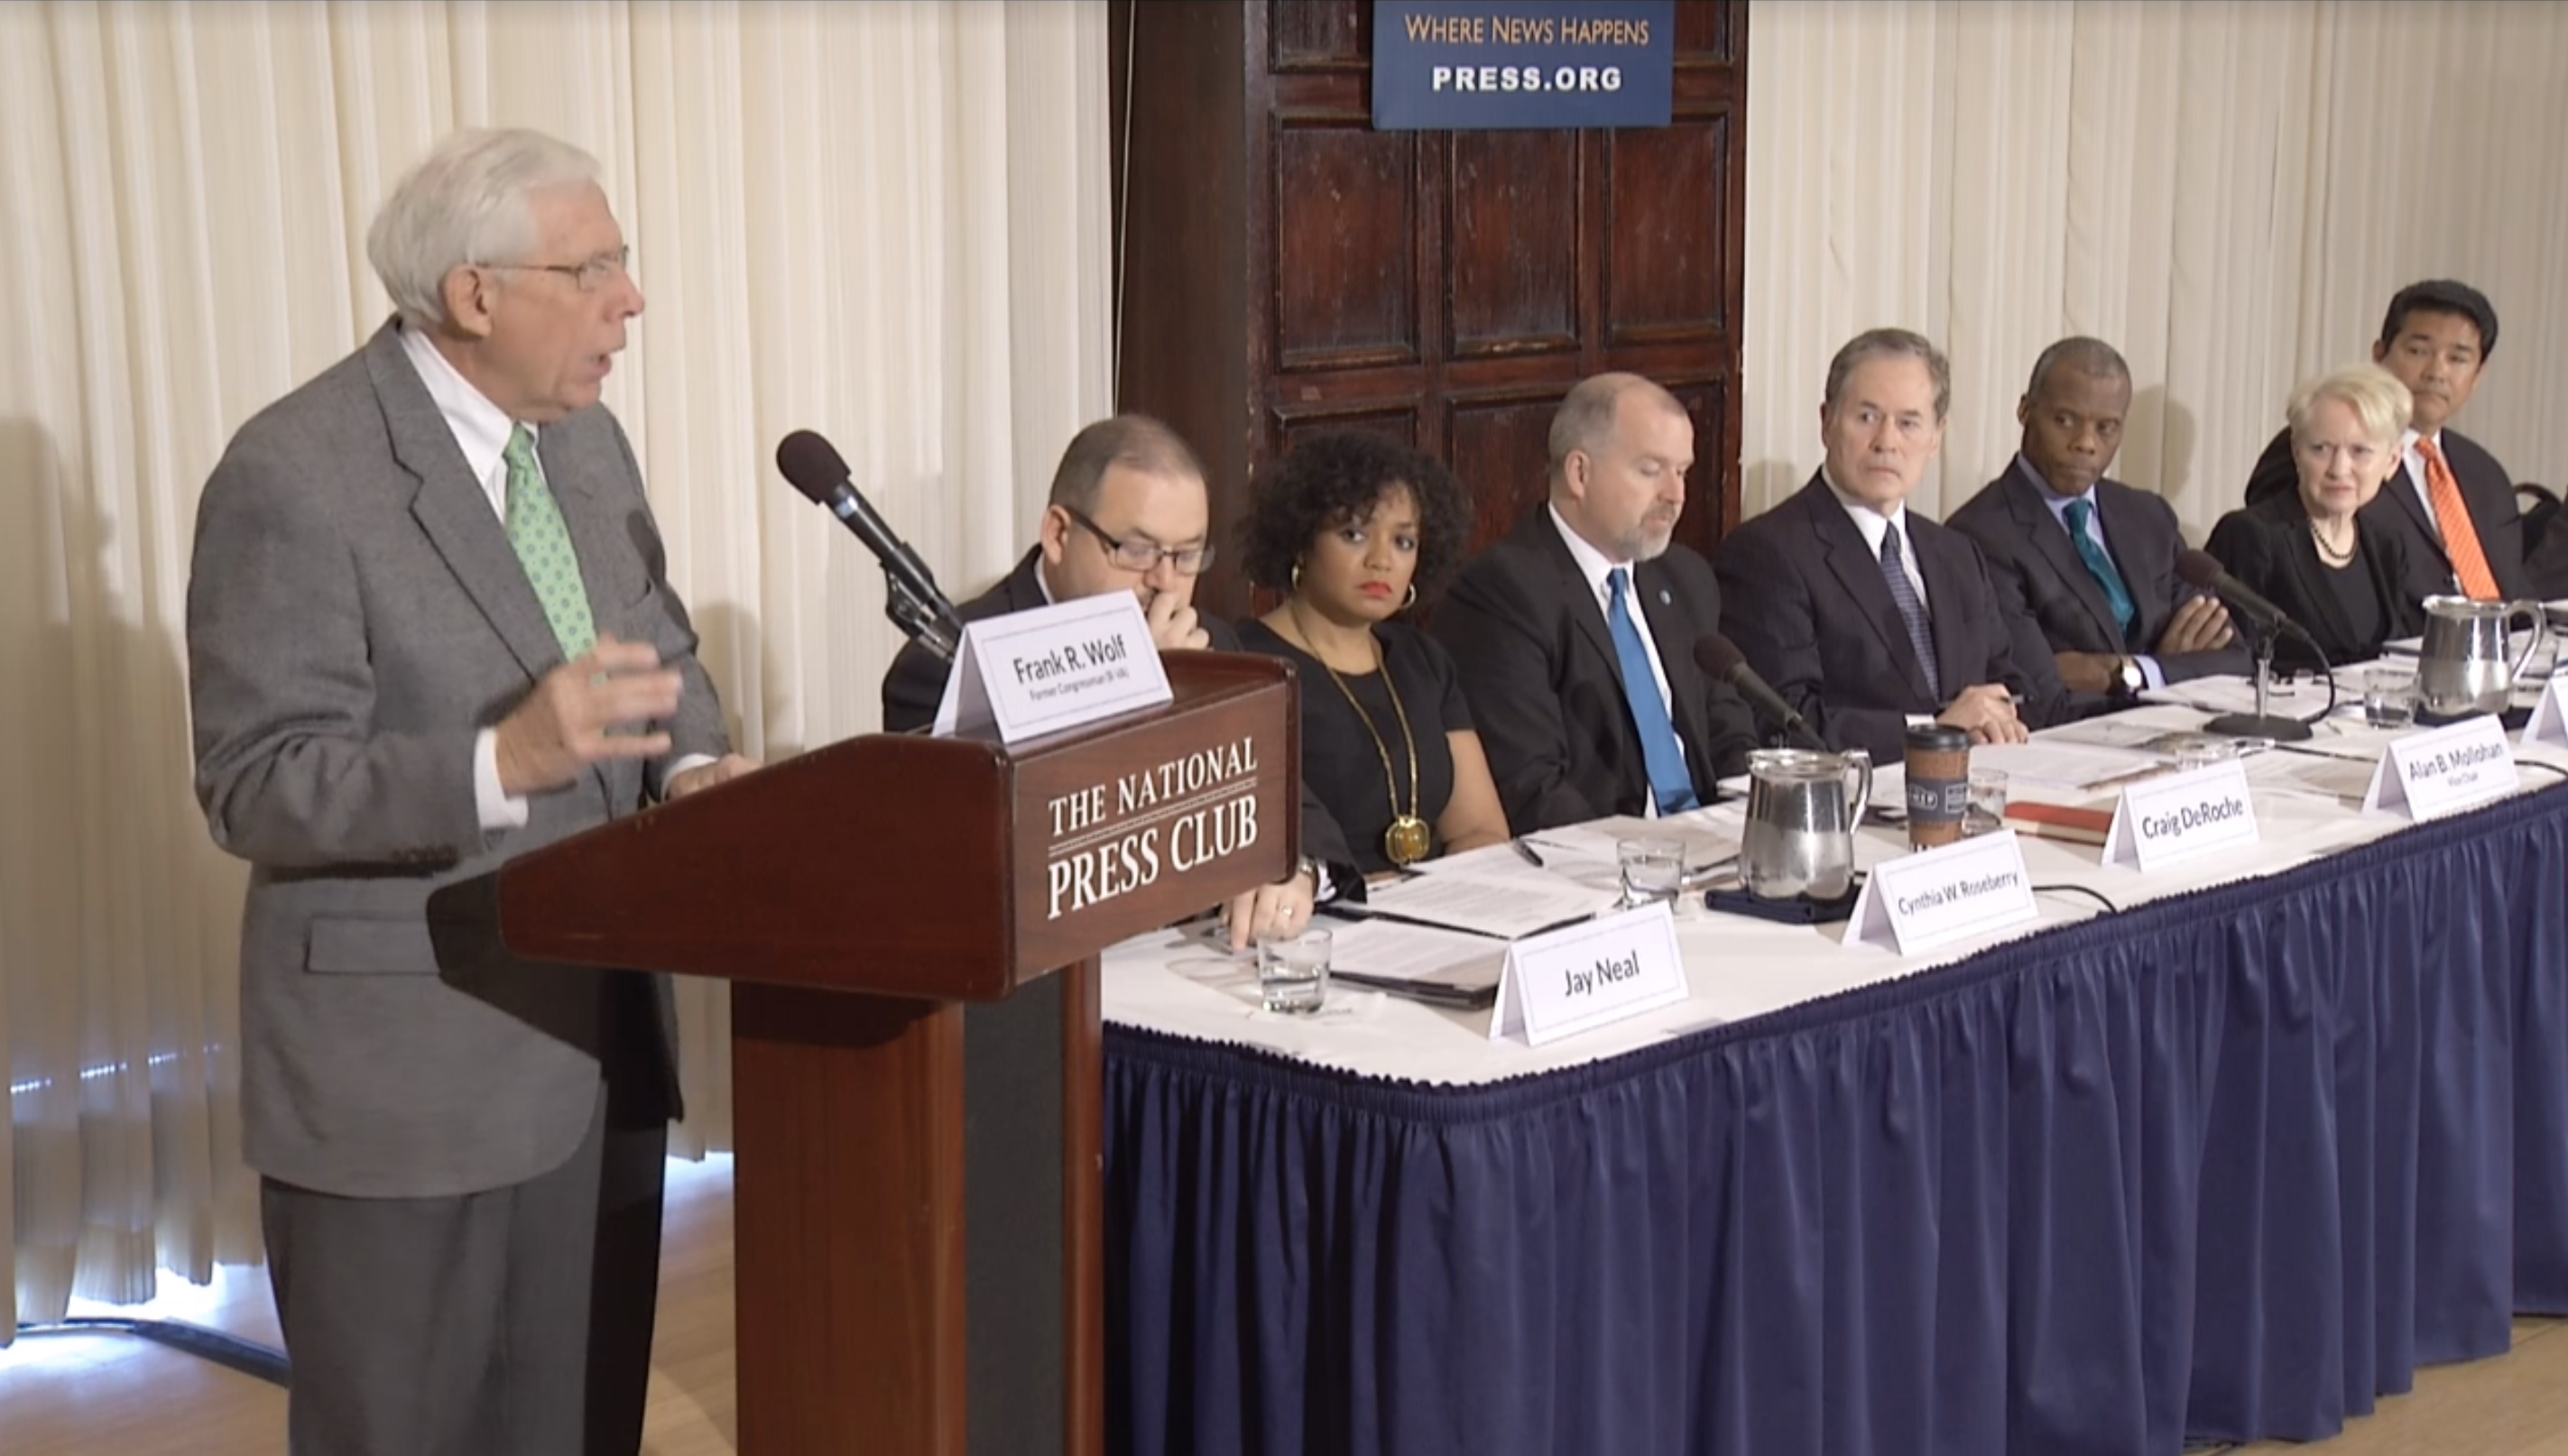 Watch the Press Conference and Public Briefing on the Final Recommendations of the Colson Task Force